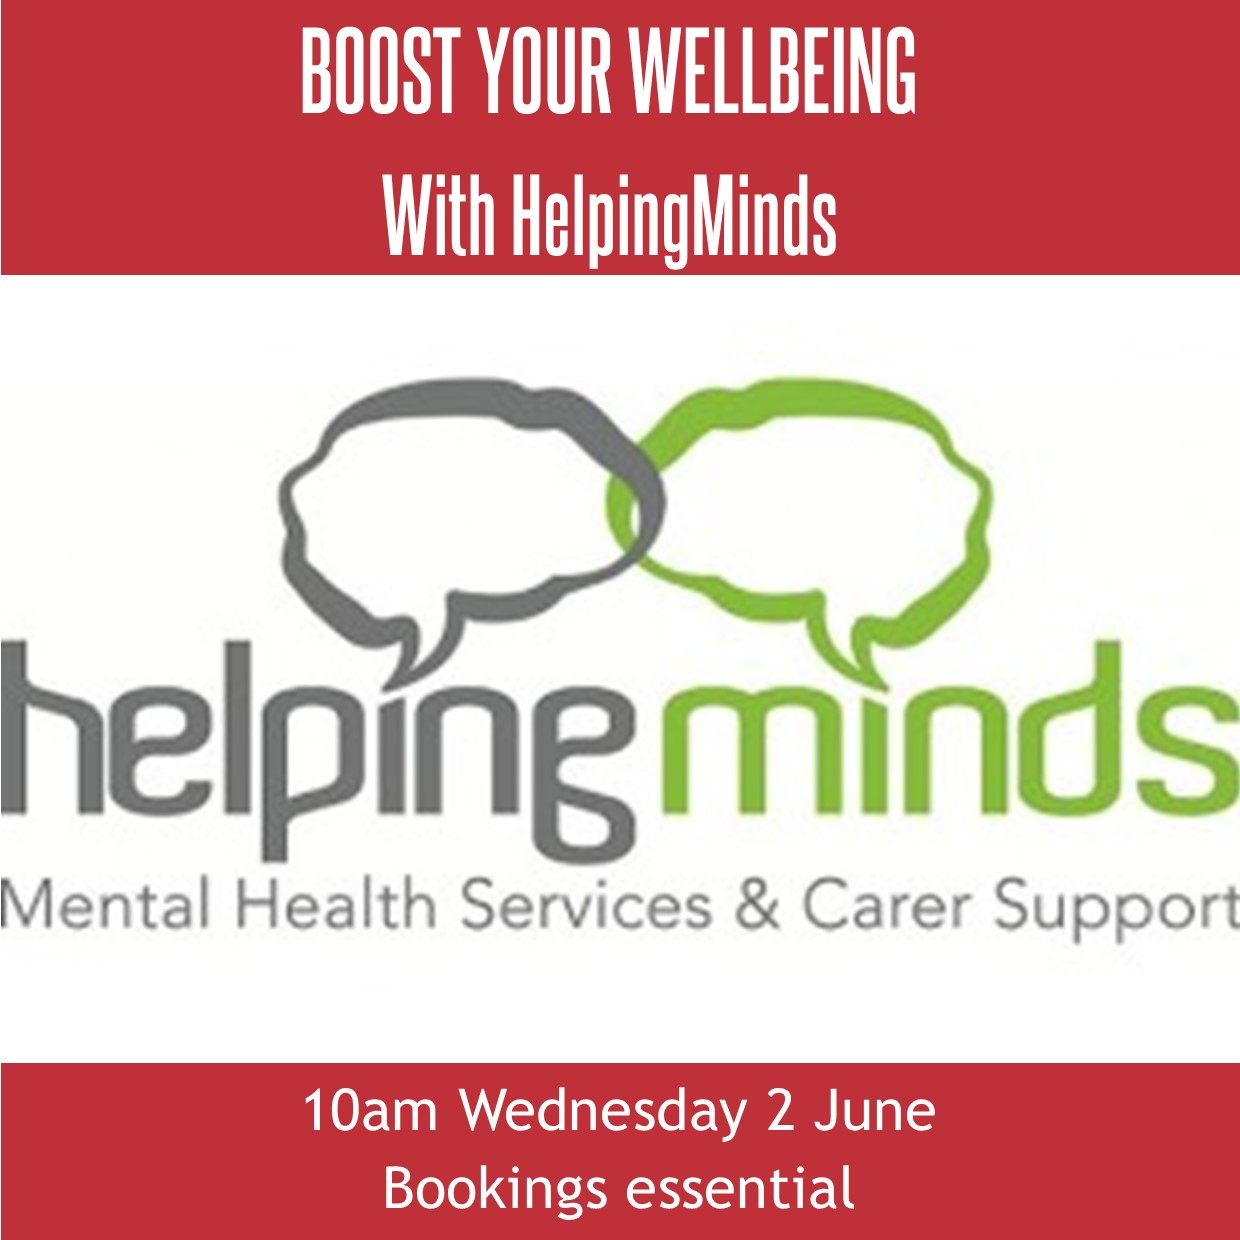 Boost Your Wellbeing with HelpingMinds